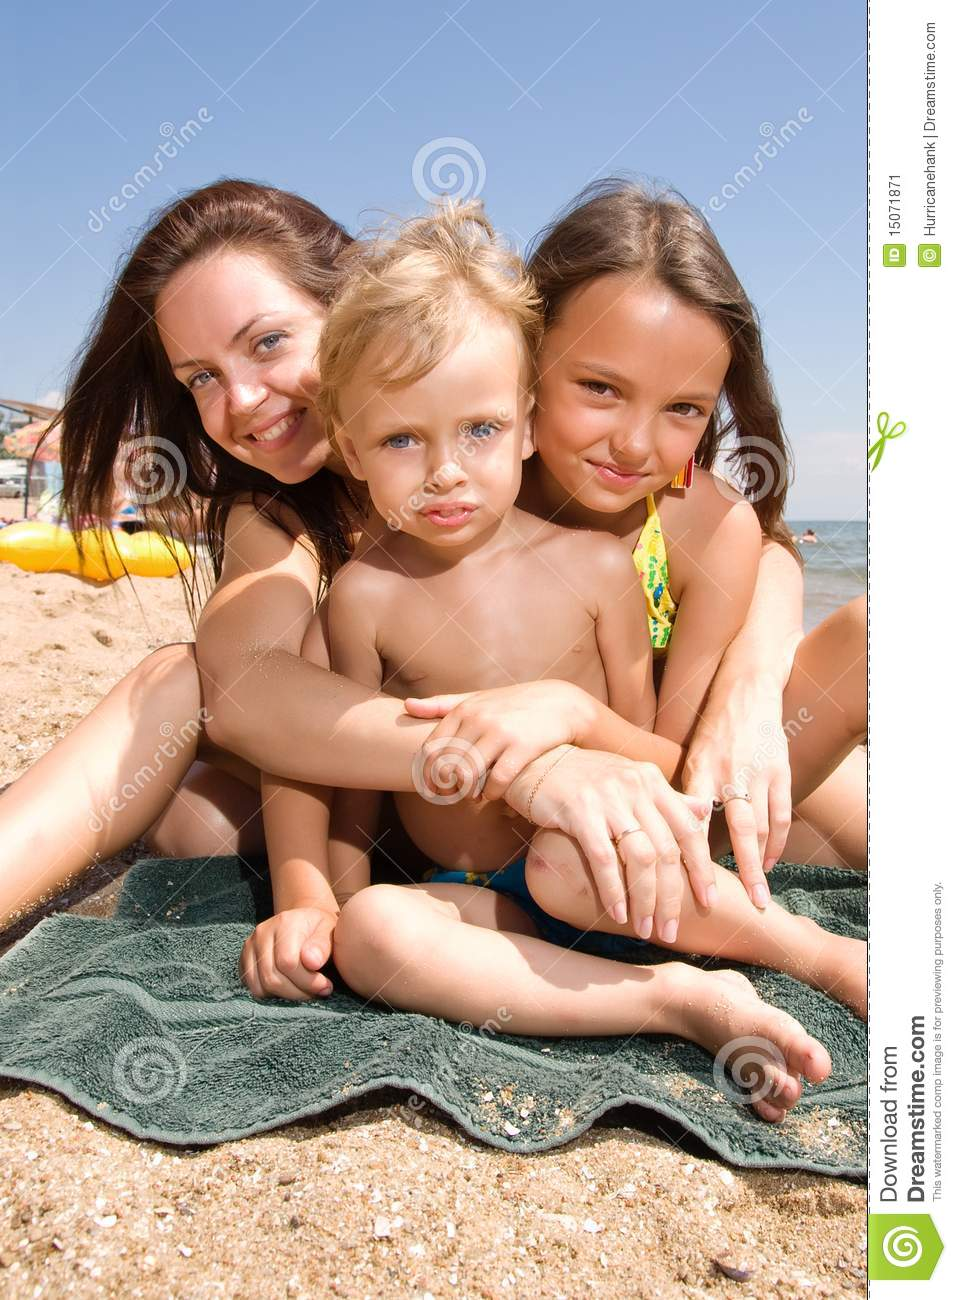 Nudist Video Nude Beaches and other outdoor family